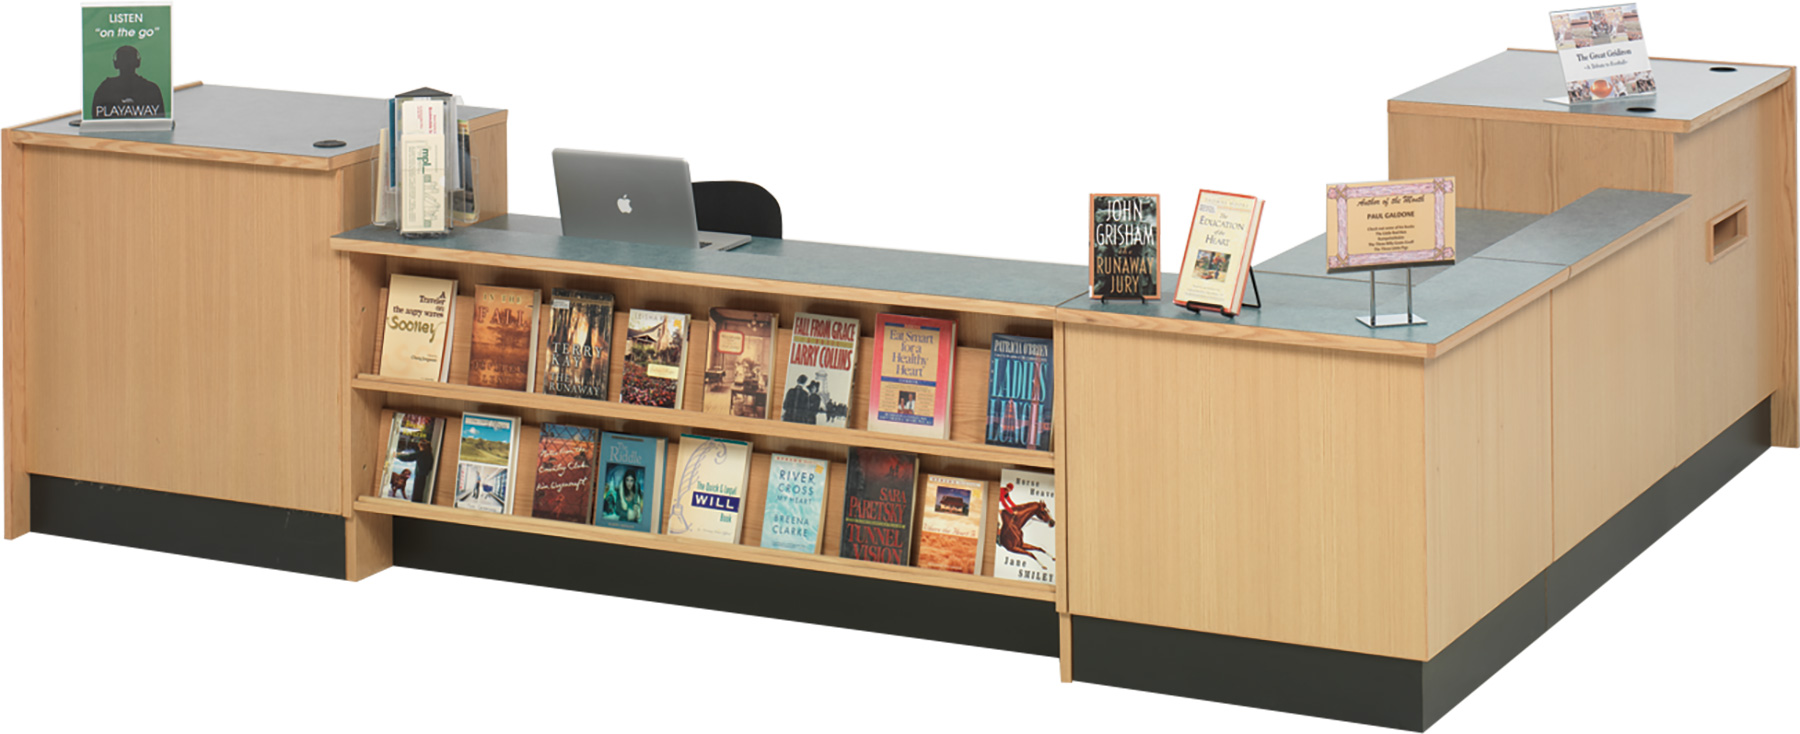 Demco® LibraCraft® Circulation Desks